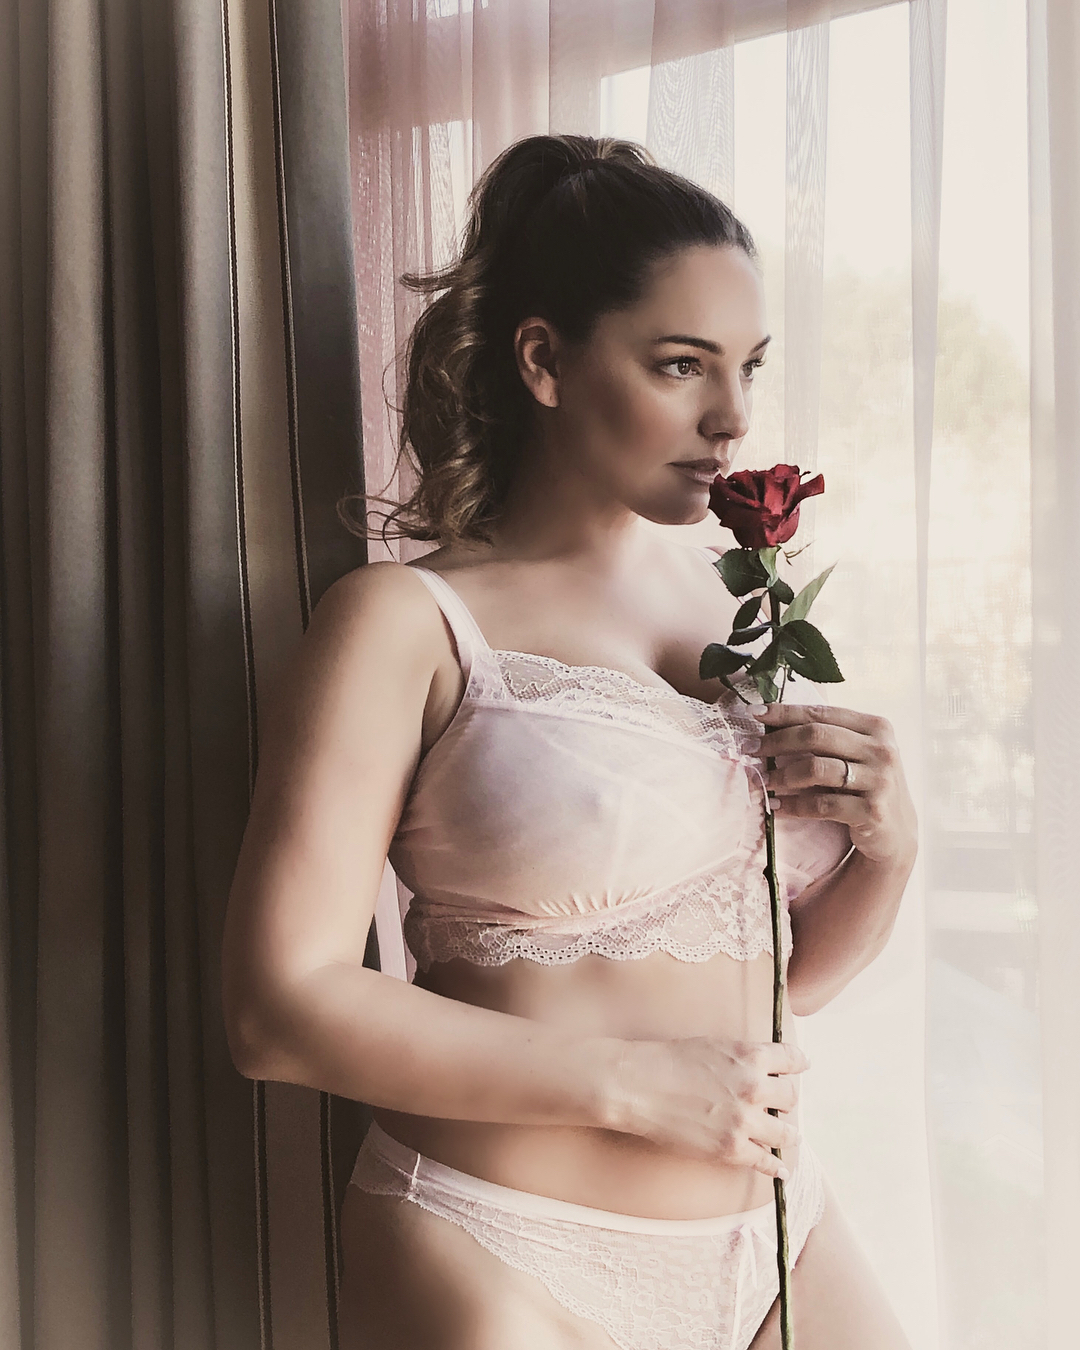 Kelly Brook huge breasts in Valentines Day Lingerie photoshoot (2018)